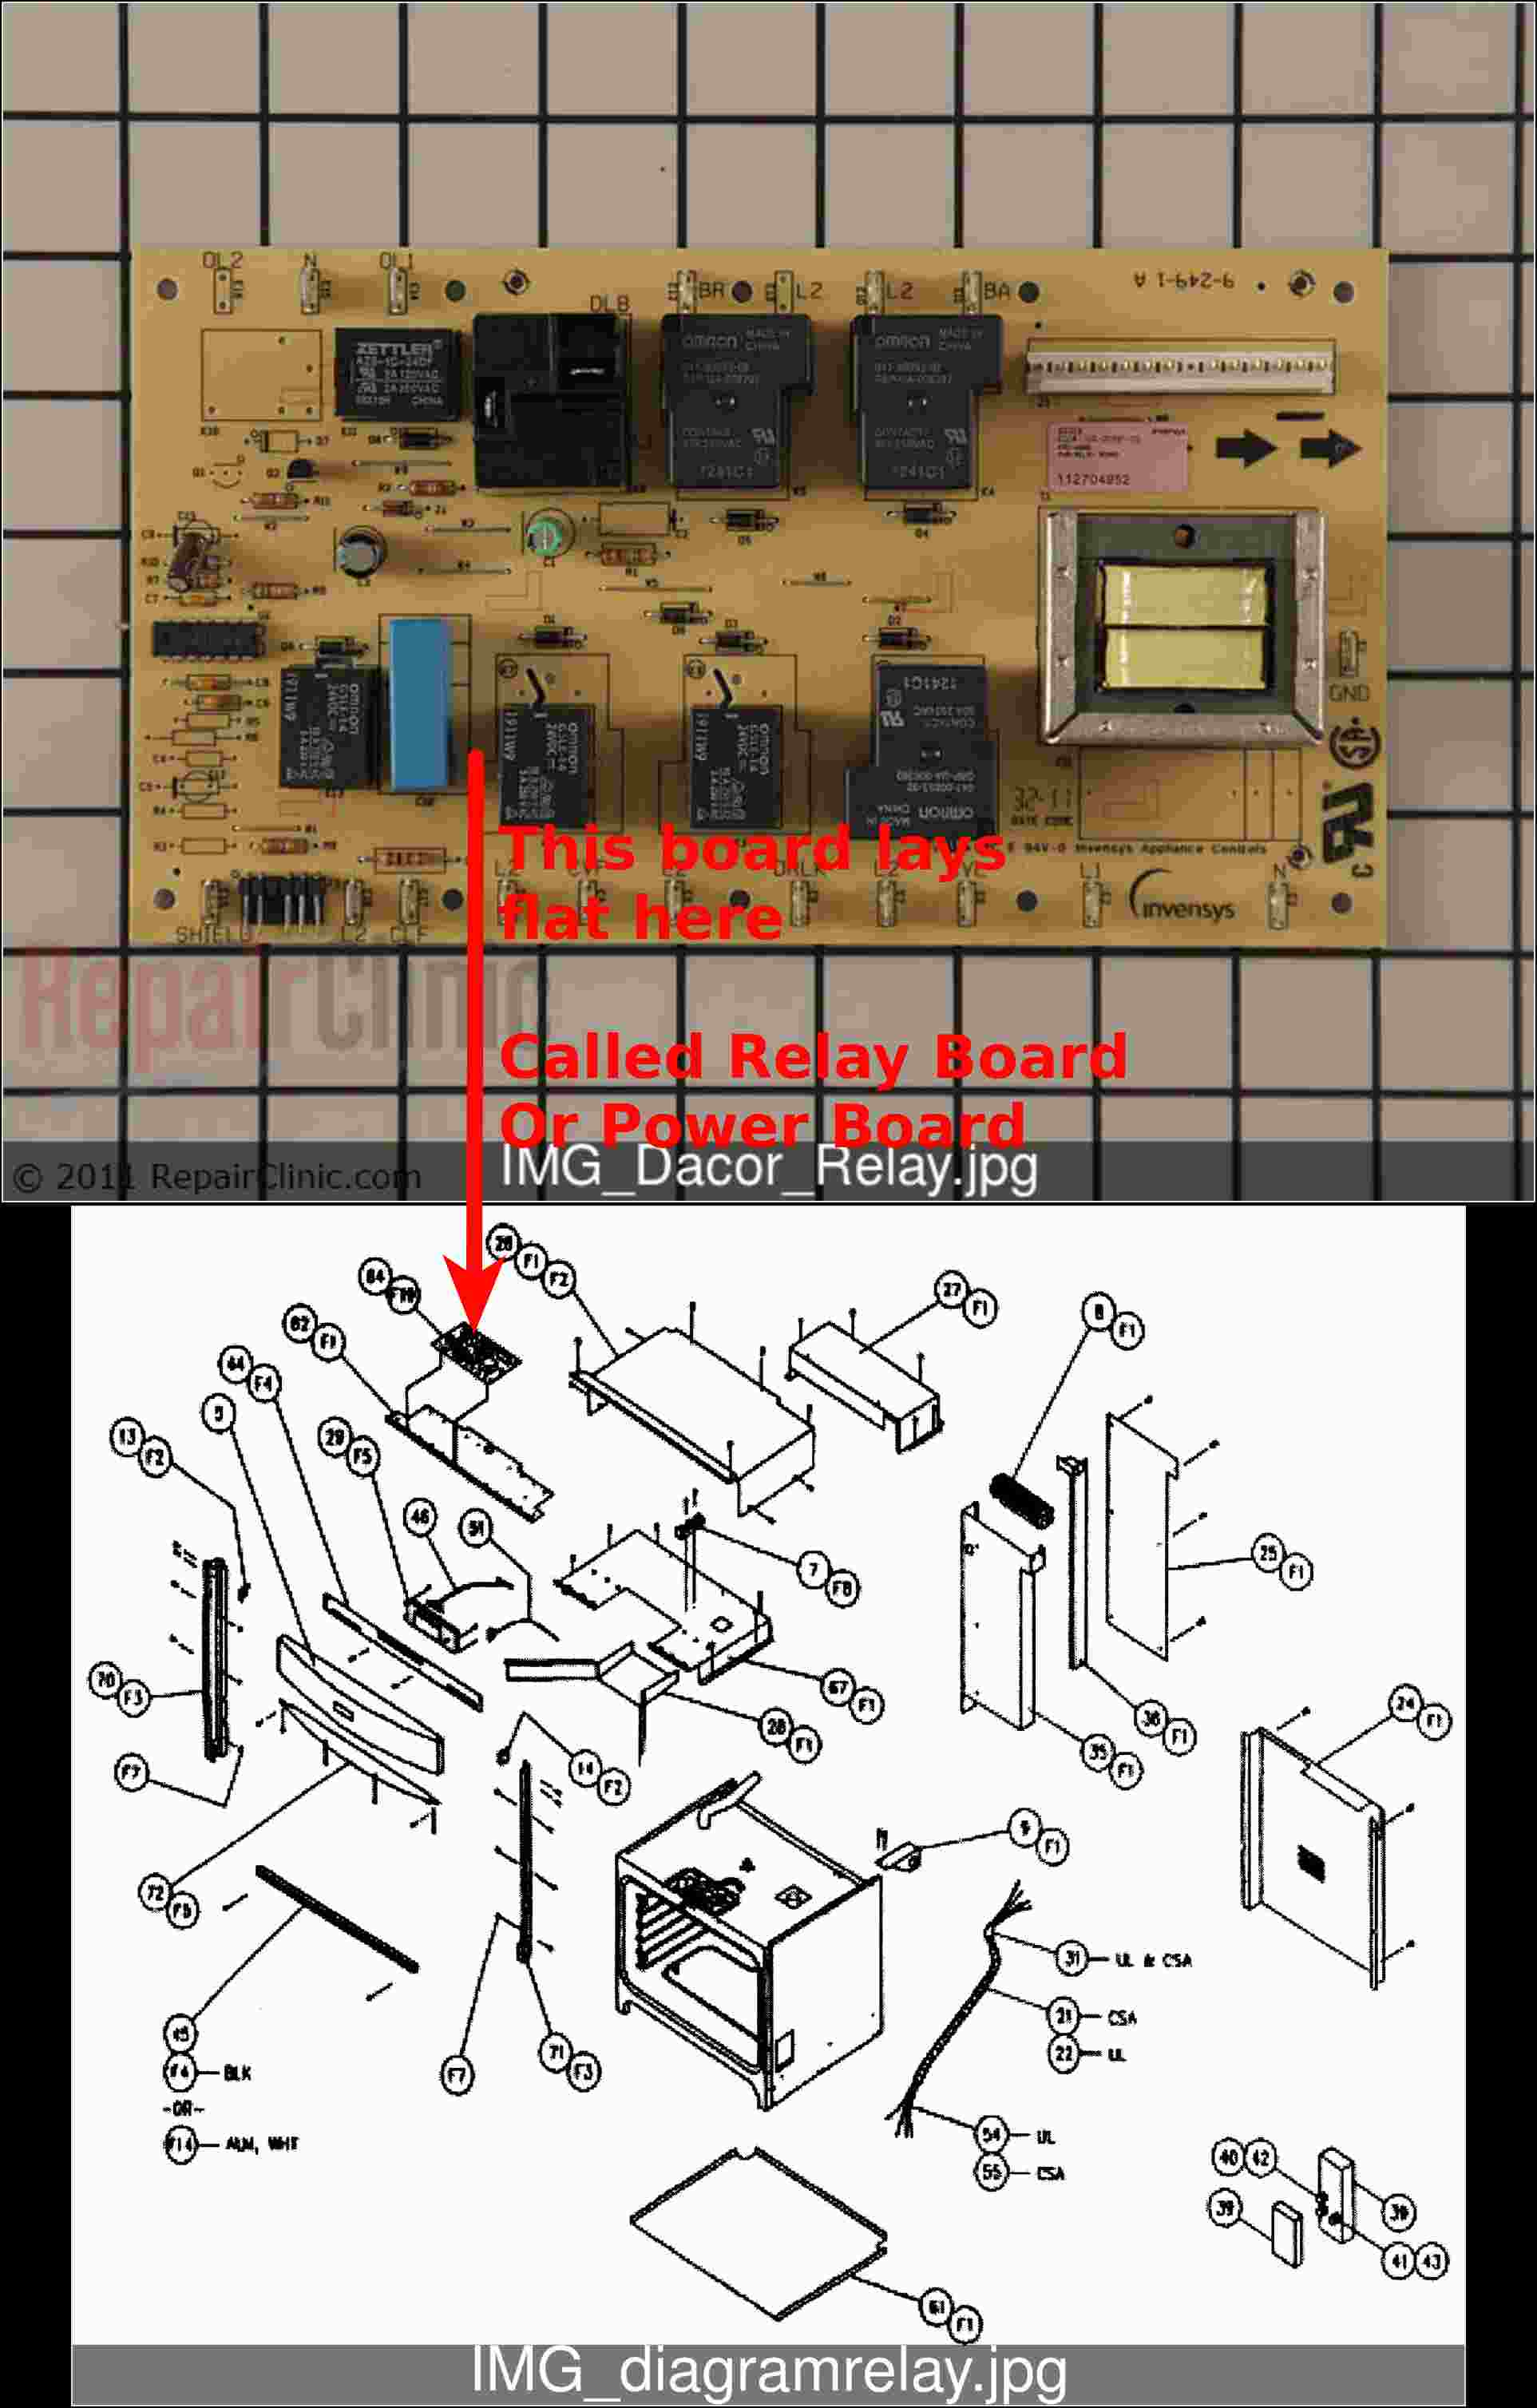 Dacor Ovens Applianceboards. Still Have Questions Contact Applianceboardrepair They Will Gladly Advise You By Email Or Phone. Wiring. Kebc147vss02 Electric Oven Wiring Diagram At Scoala.co